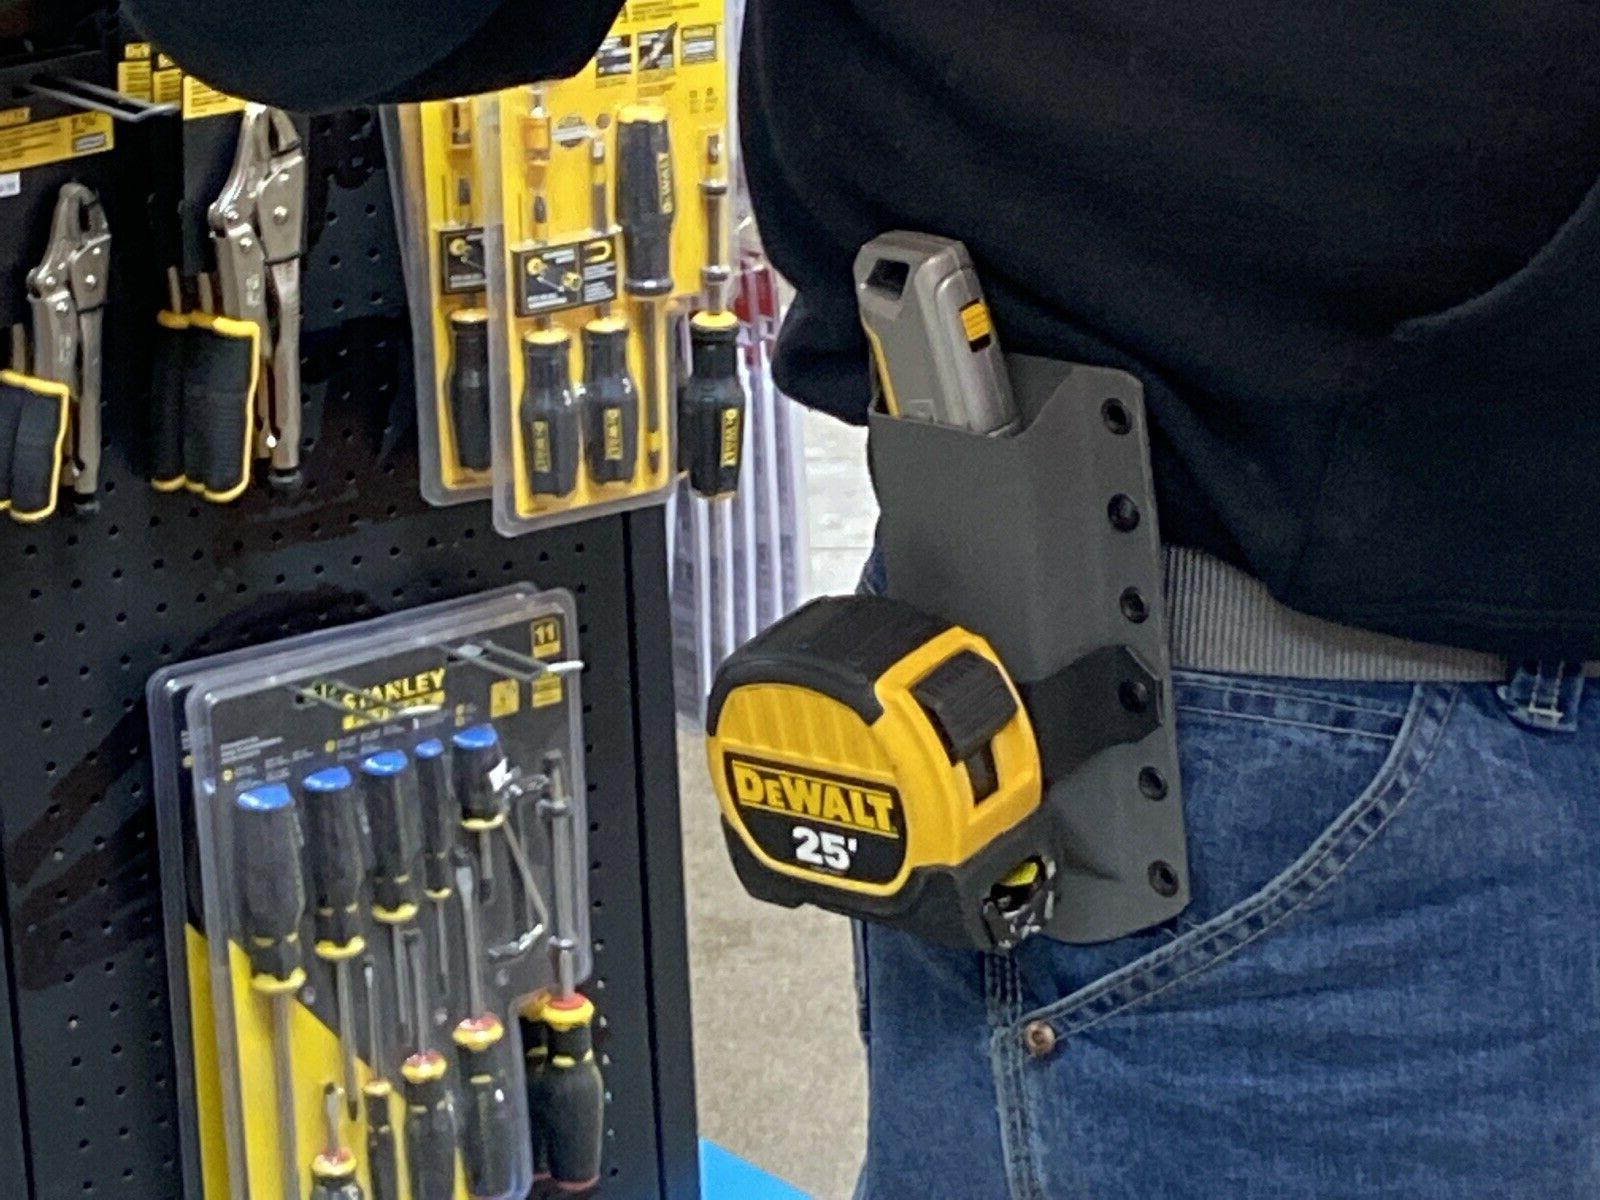 Tape & DeWALT Cordless drill holds Pencil, MORE!